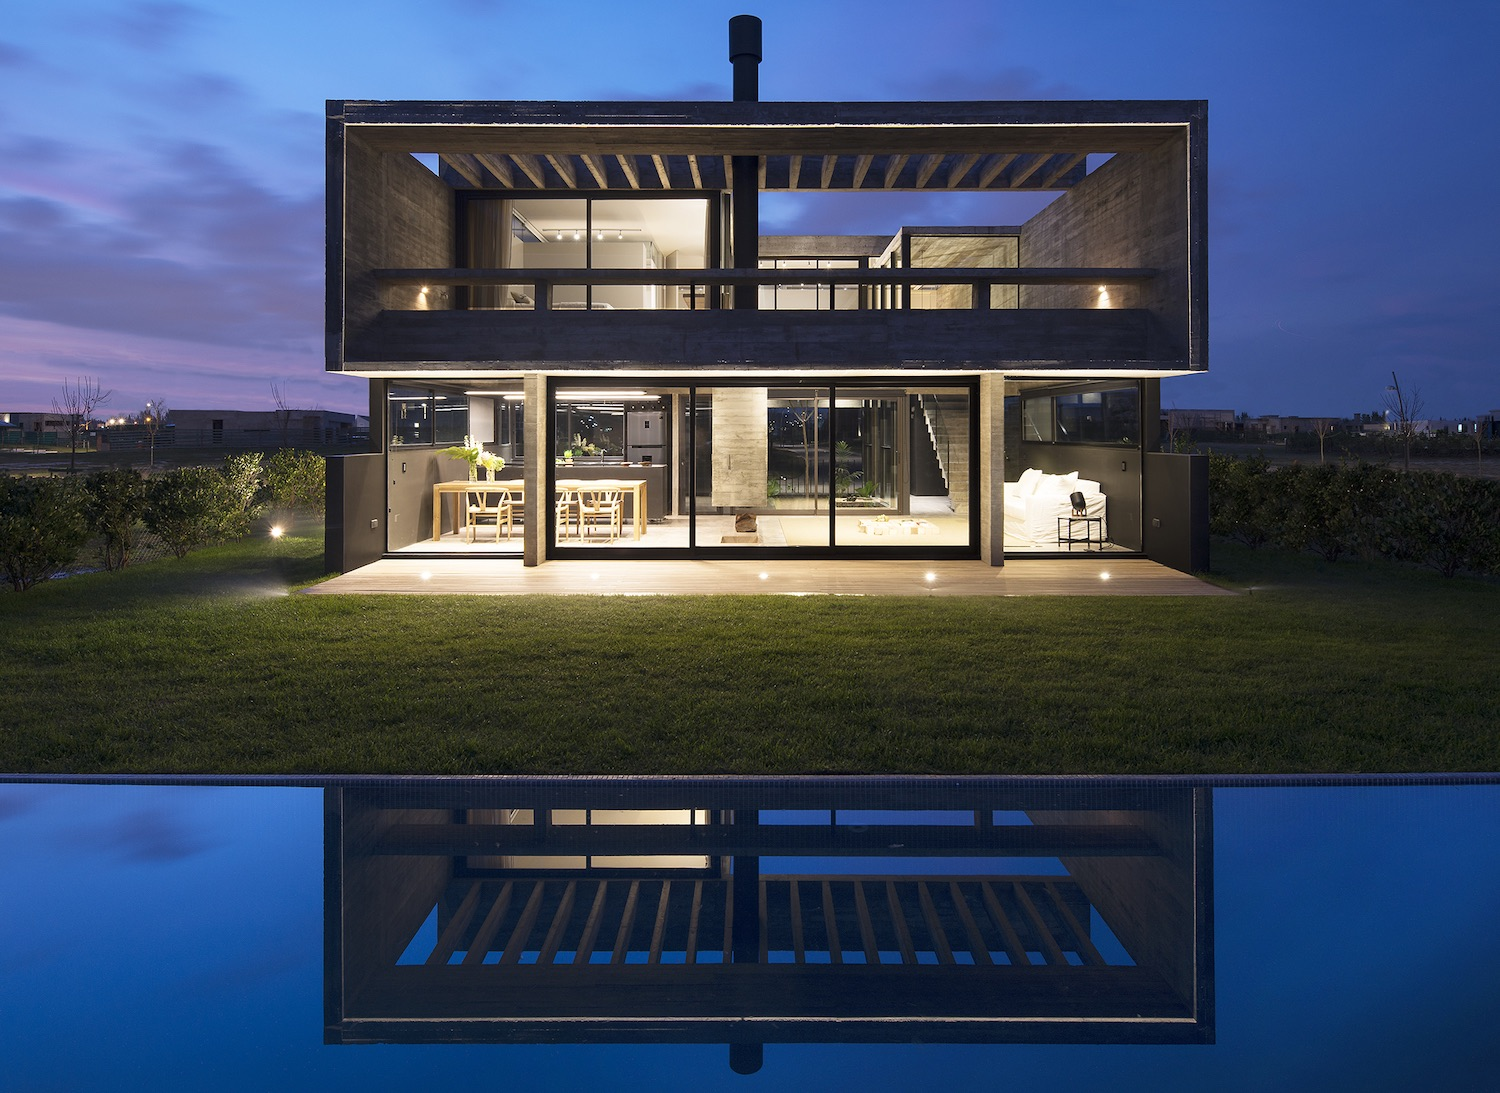 concrete house with illumination at night reflected at pool